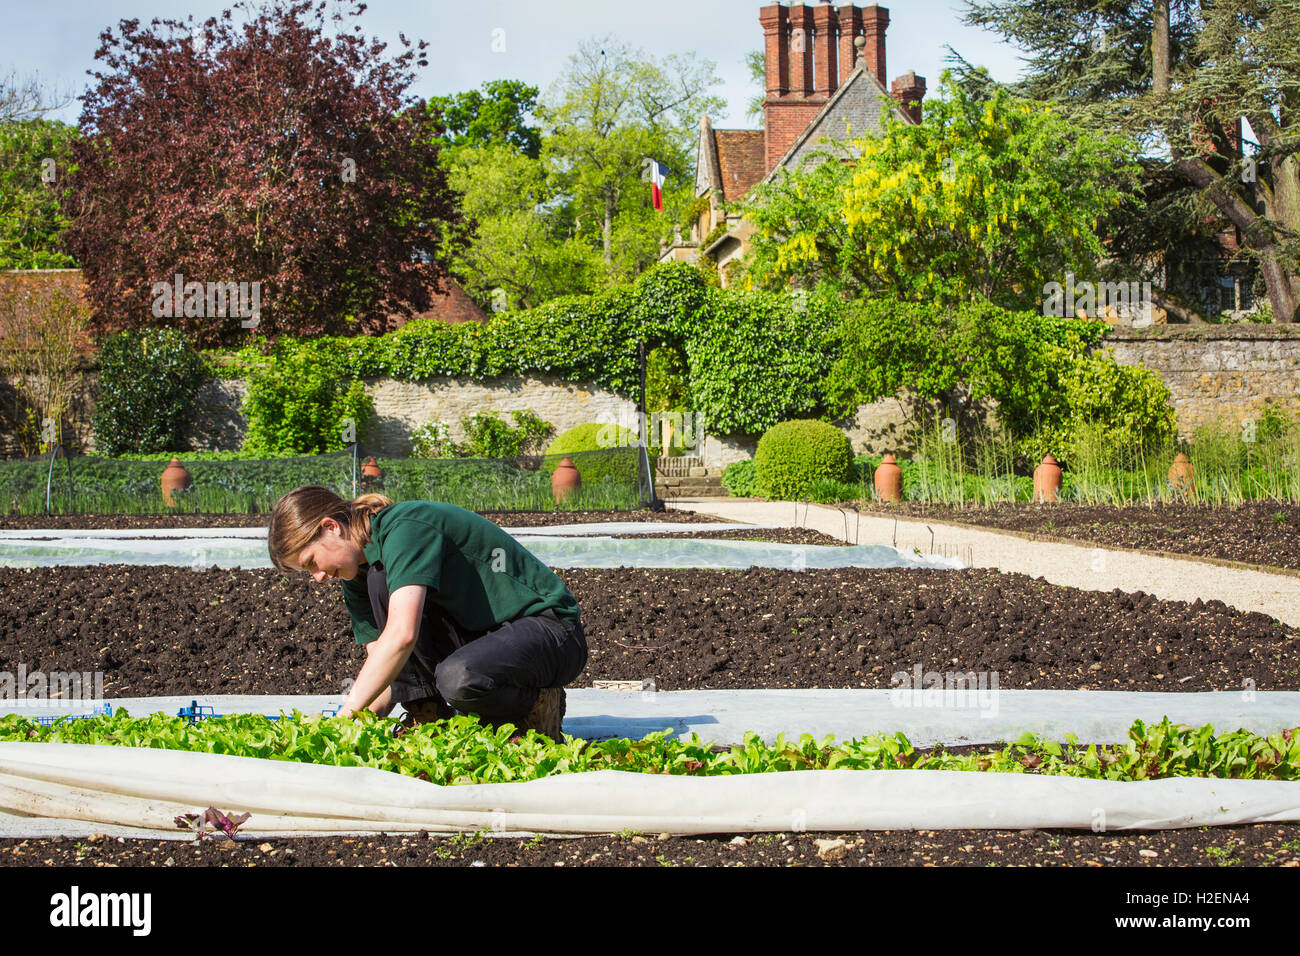 A woman working in a walled garden, harvesting vegetables from plants under horticultural fleece. - Stock Image